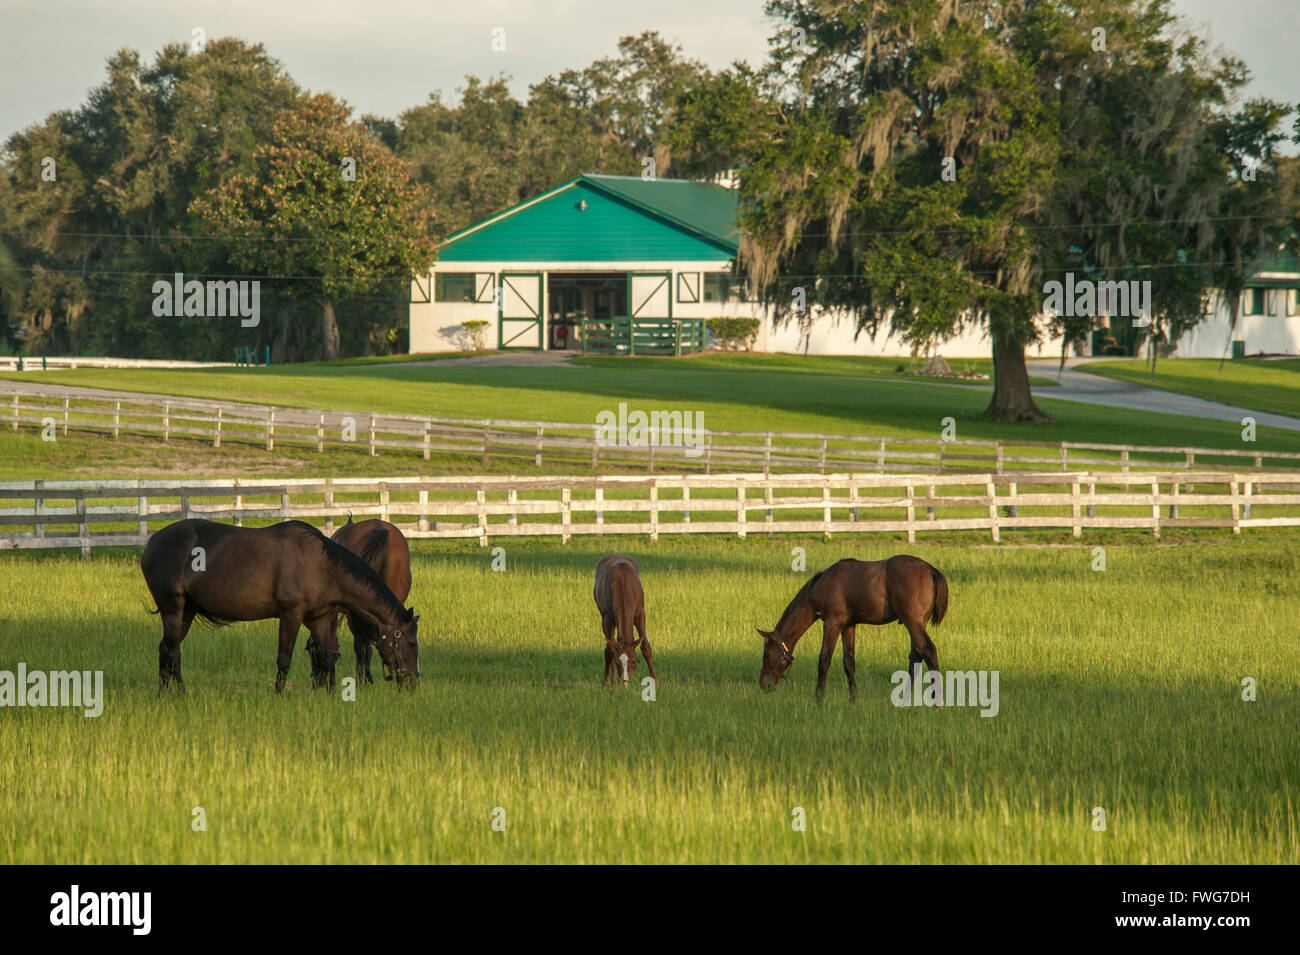 Scenic Thoroughbred Horse Farm - Stock Image